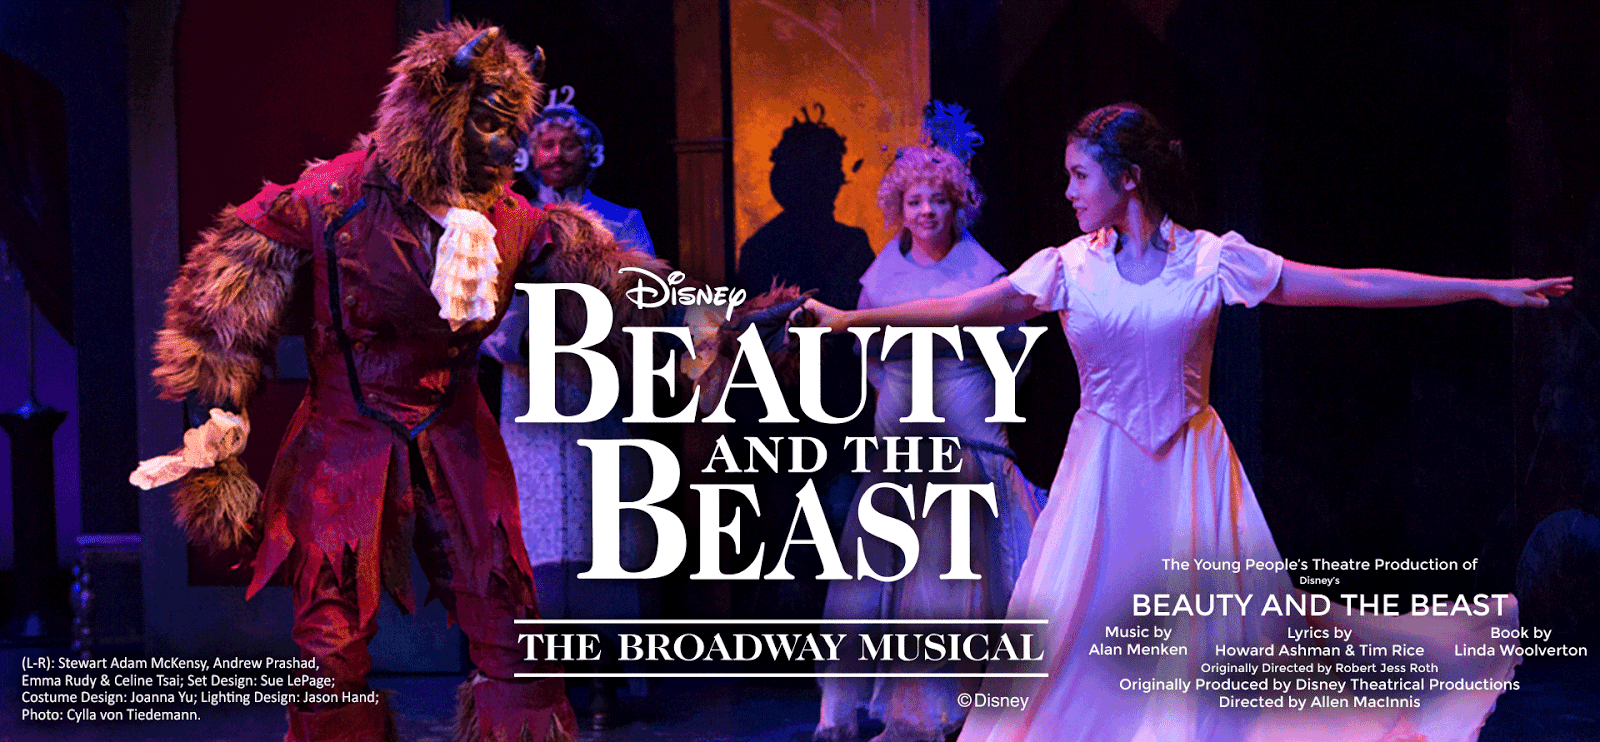 Family FREE Stream Disney's Beauty and the Beast Musical